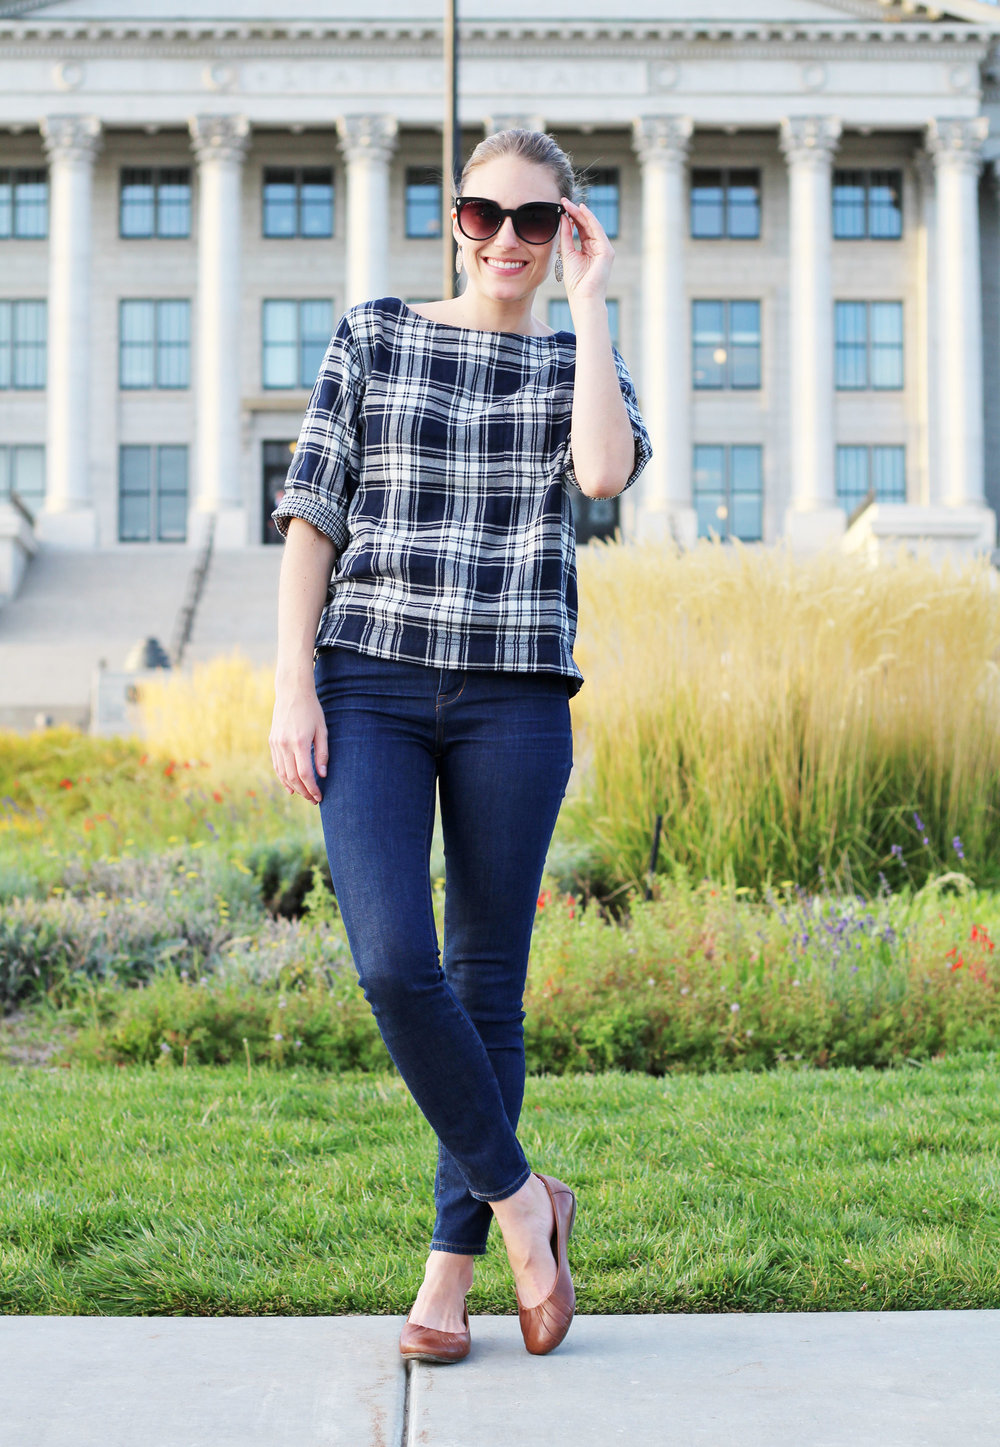 Earth 'Bellwether' flats with plaid top and high-rise skinny jeans — Cotton Cashmere Cat Hair